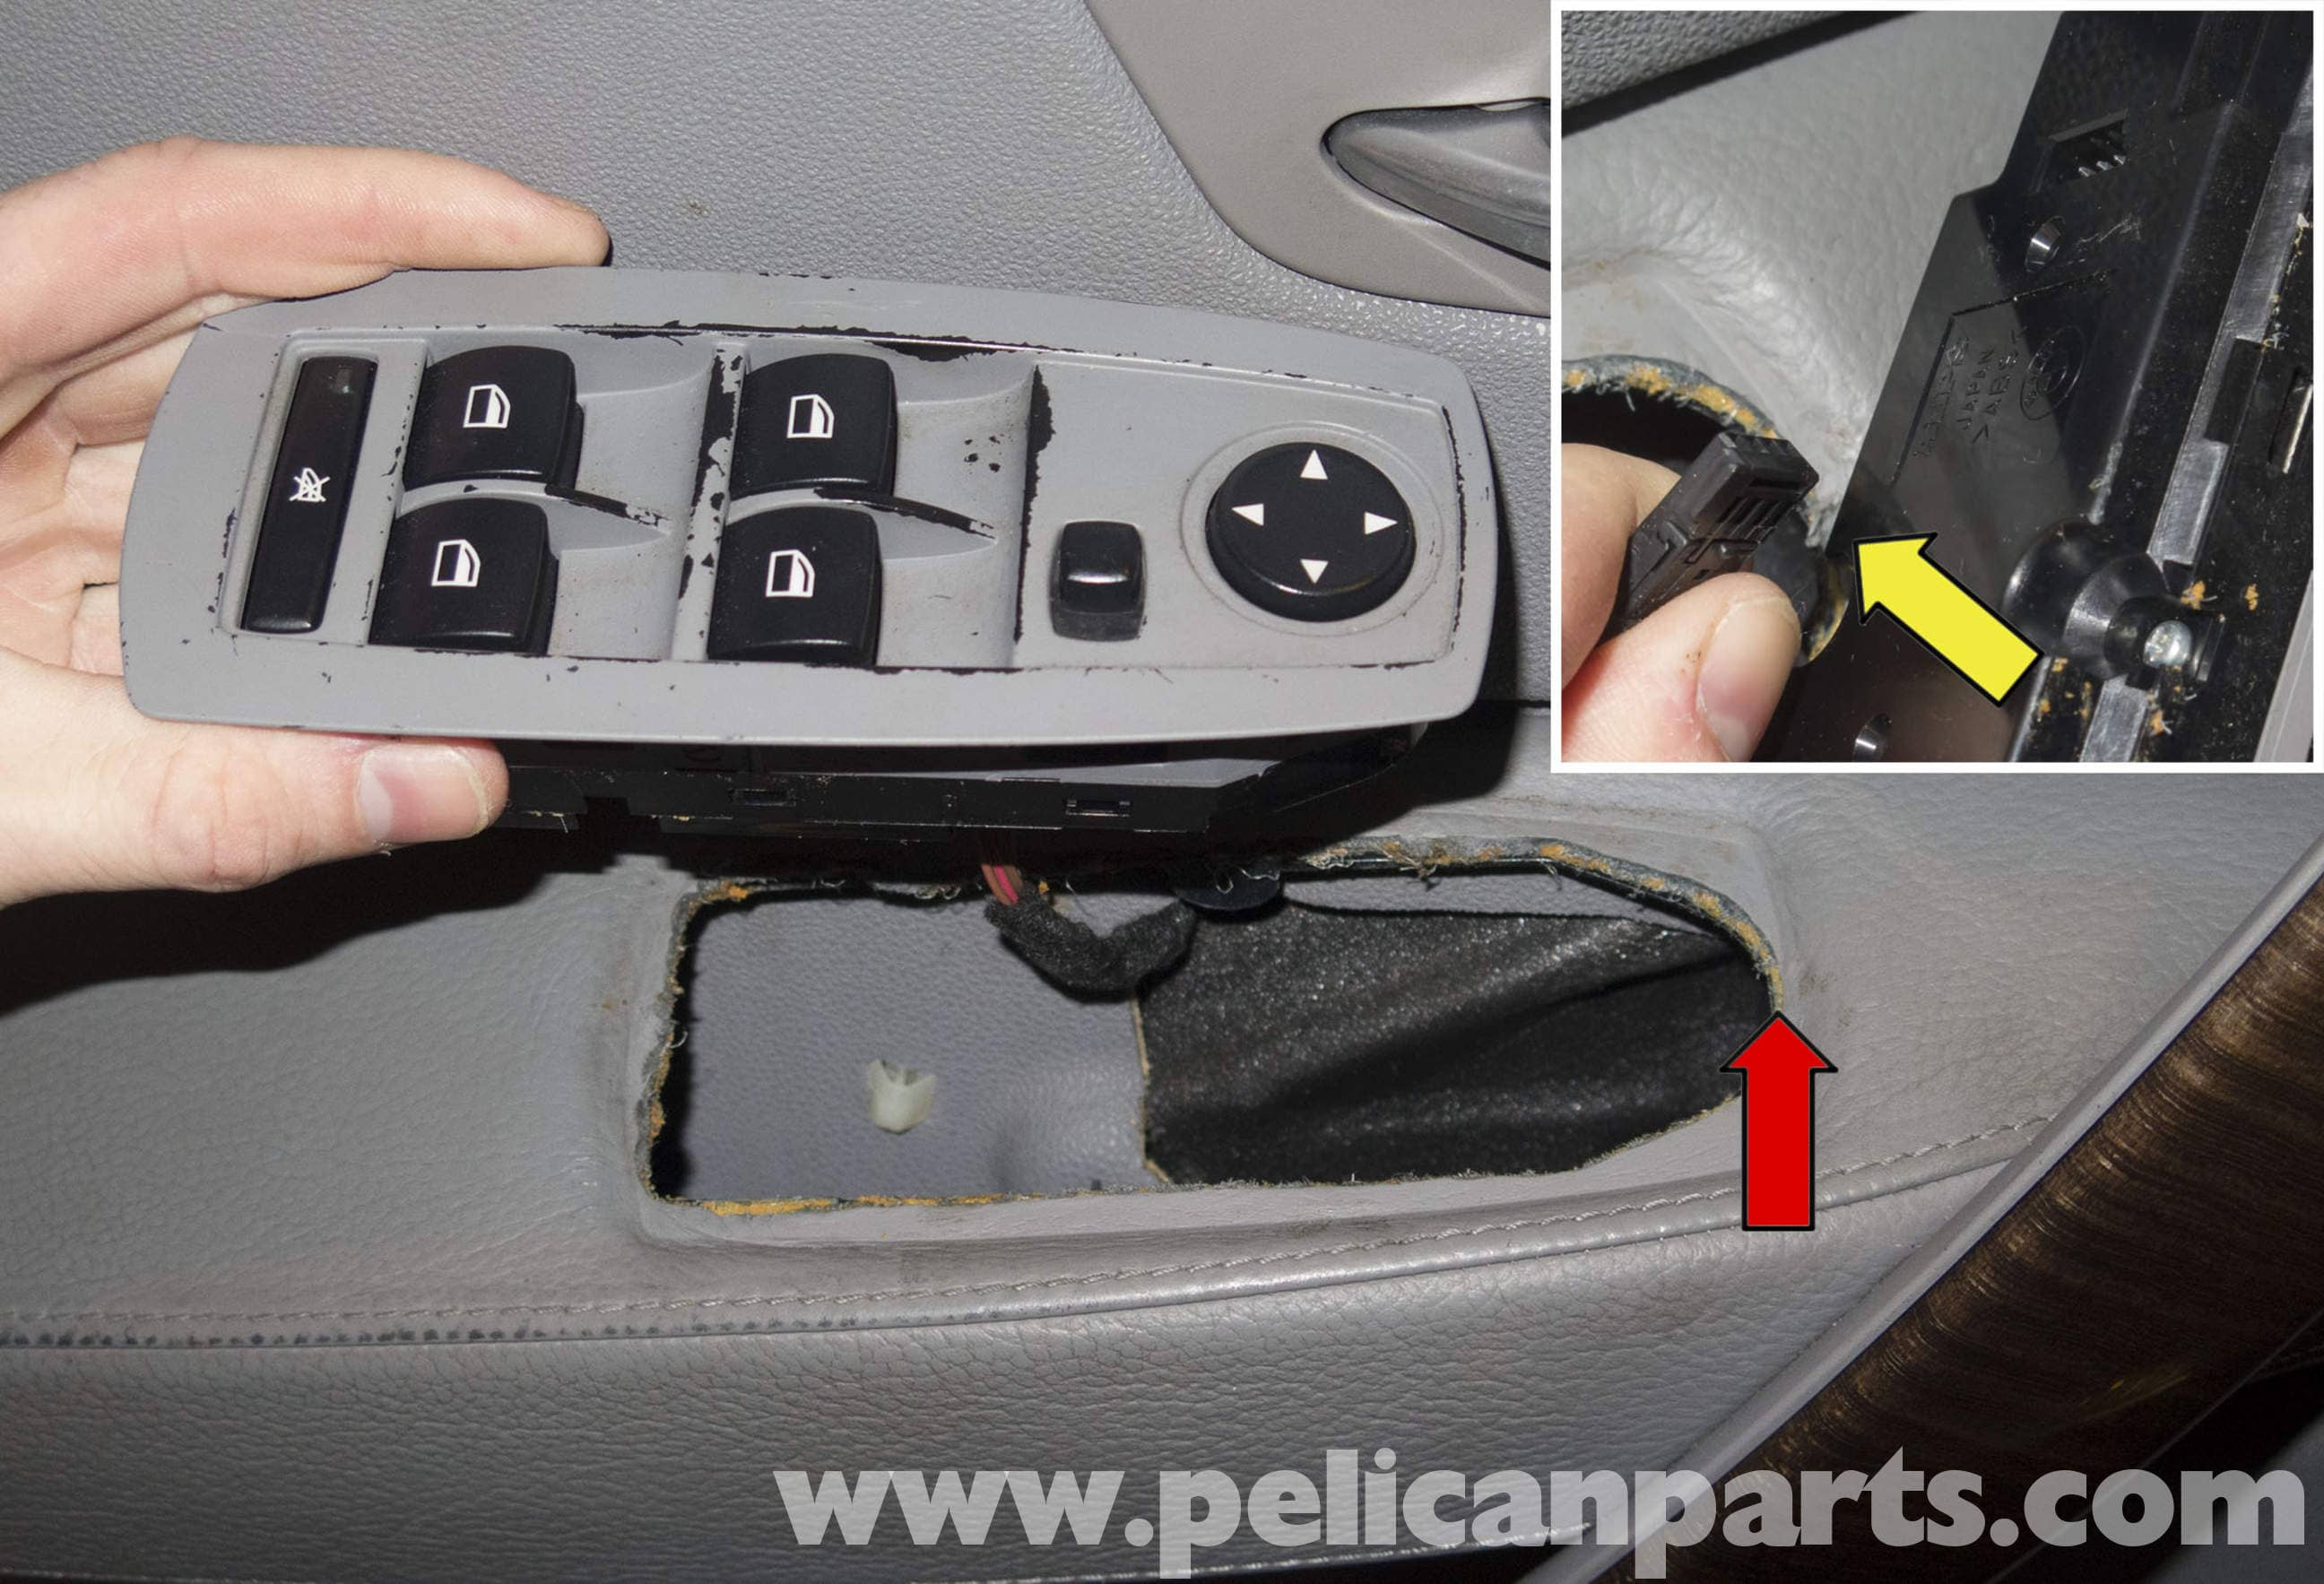 Pelican Technical Article Bmw X3 Power Window Switch Replacement Engine Connect Digital Outputs To Cut Off Car Door Windows Circuit Large Image Extra